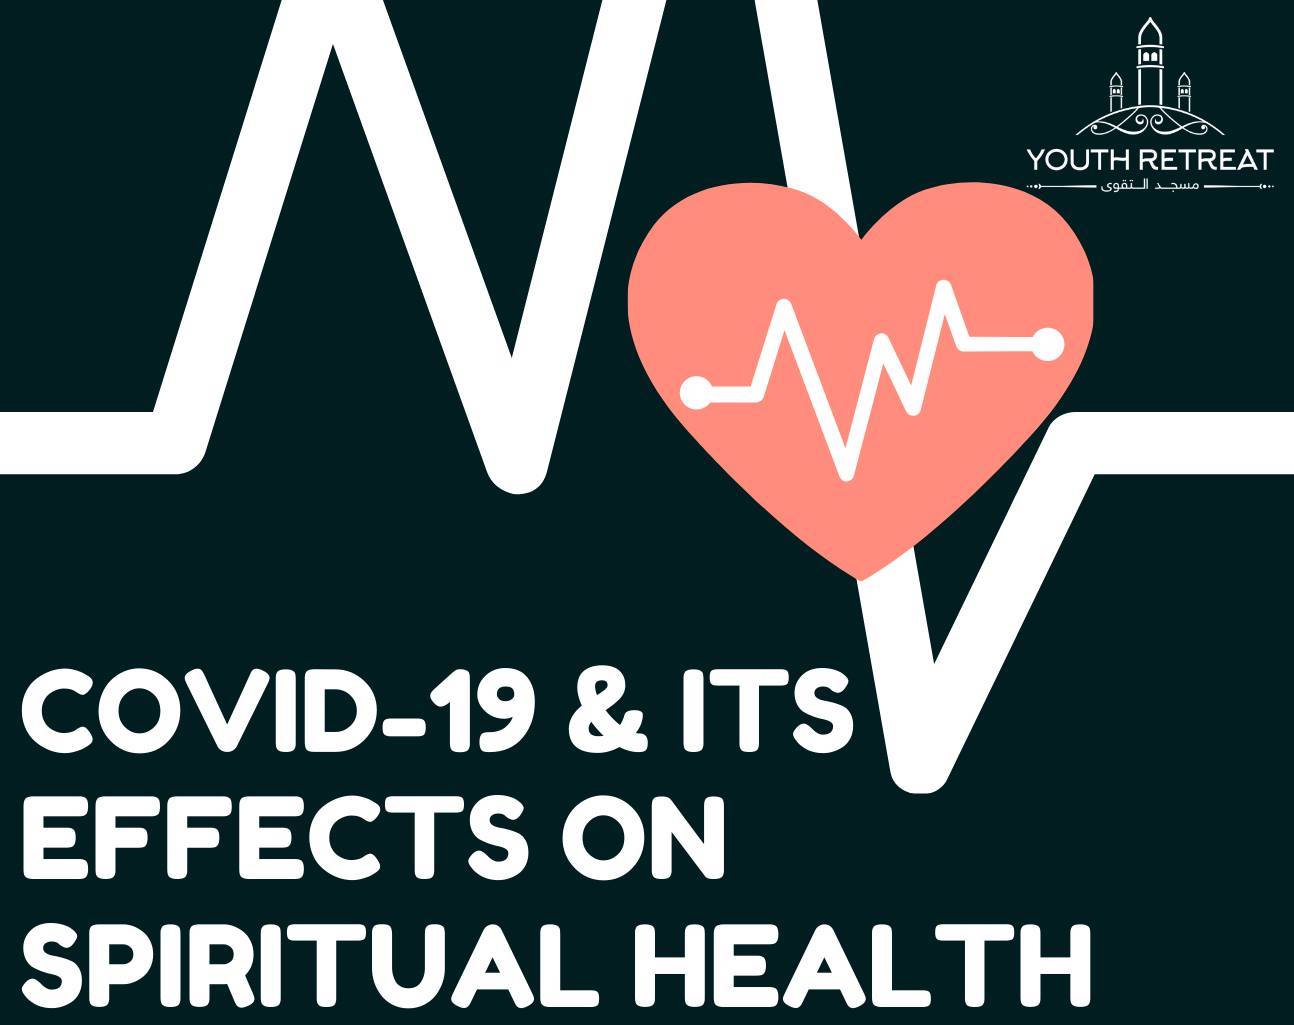 COVID-19 and Effects on Spiritual Health